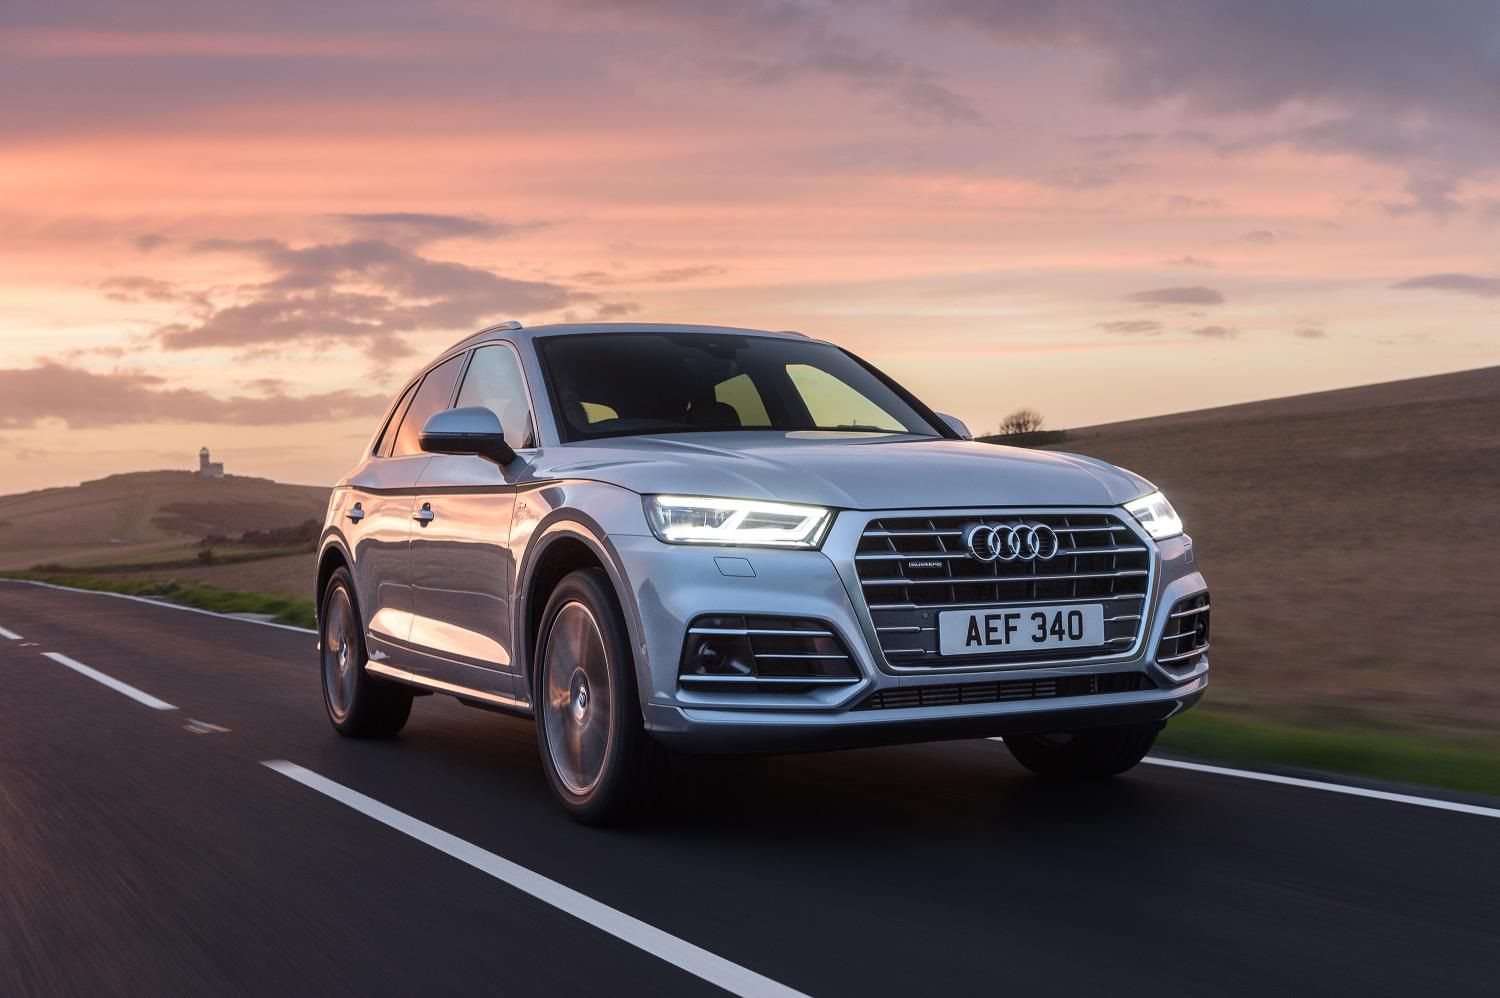 SIlver Audi Q5 driving towards you at sunset down an empty road